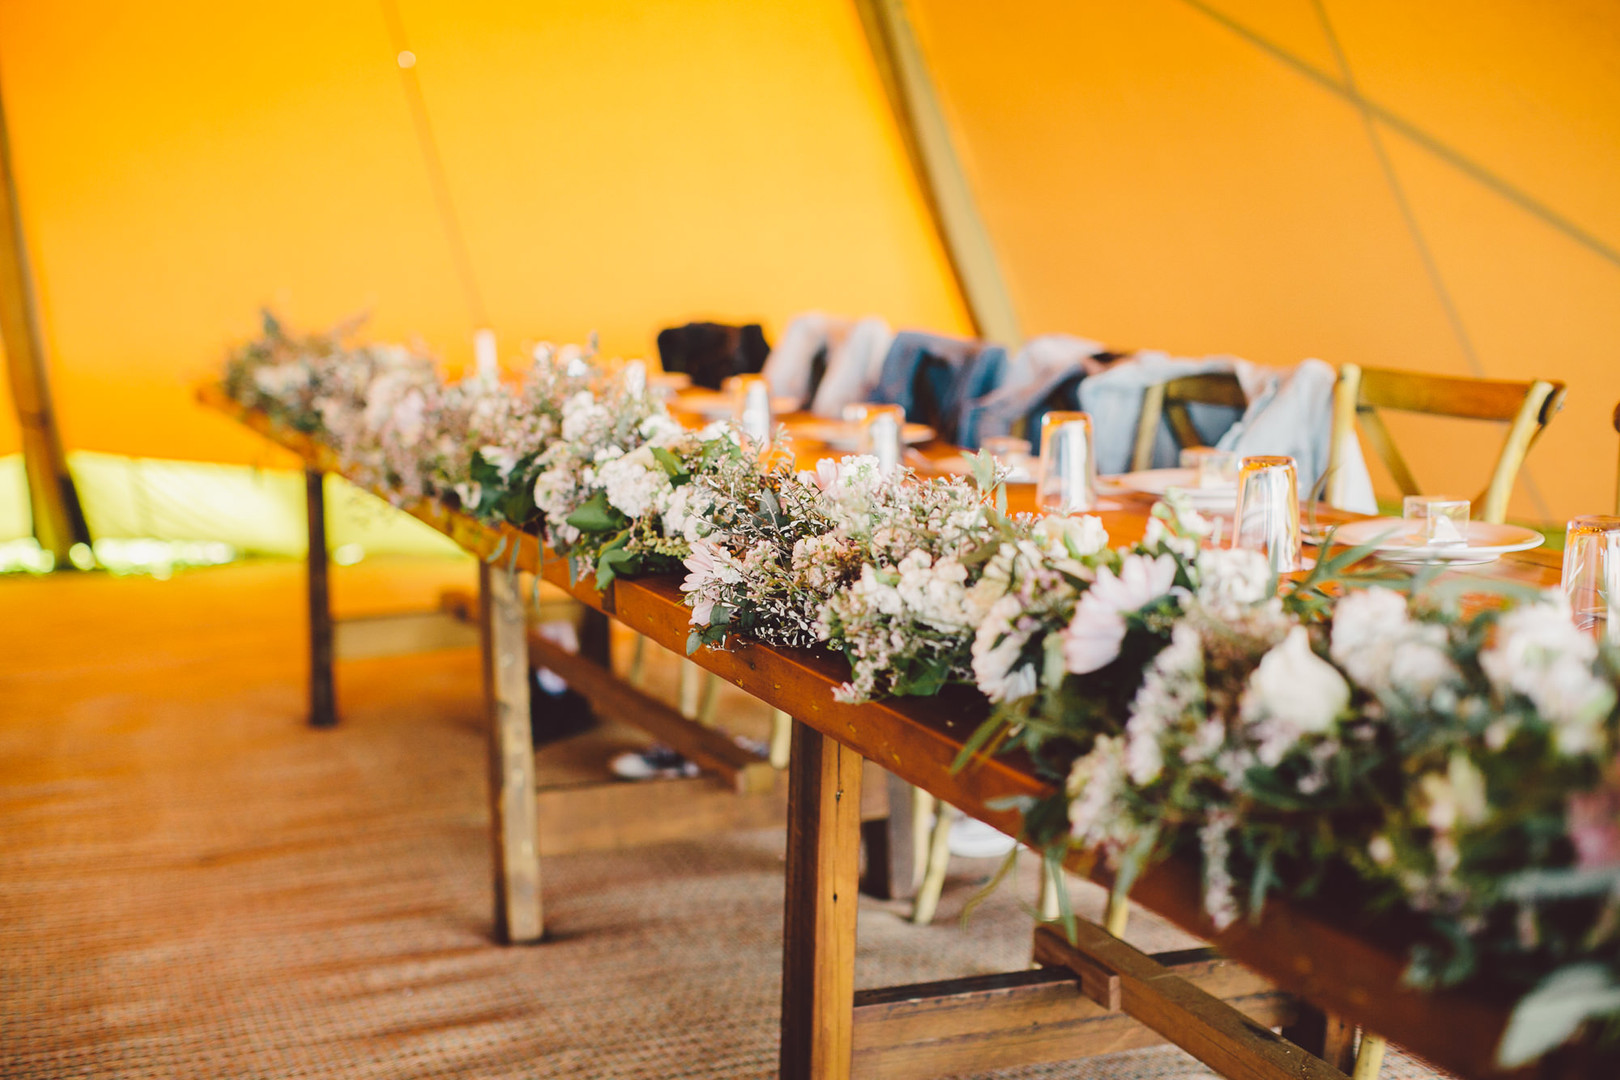 Tipi Luxe - Rustic Feasting Table